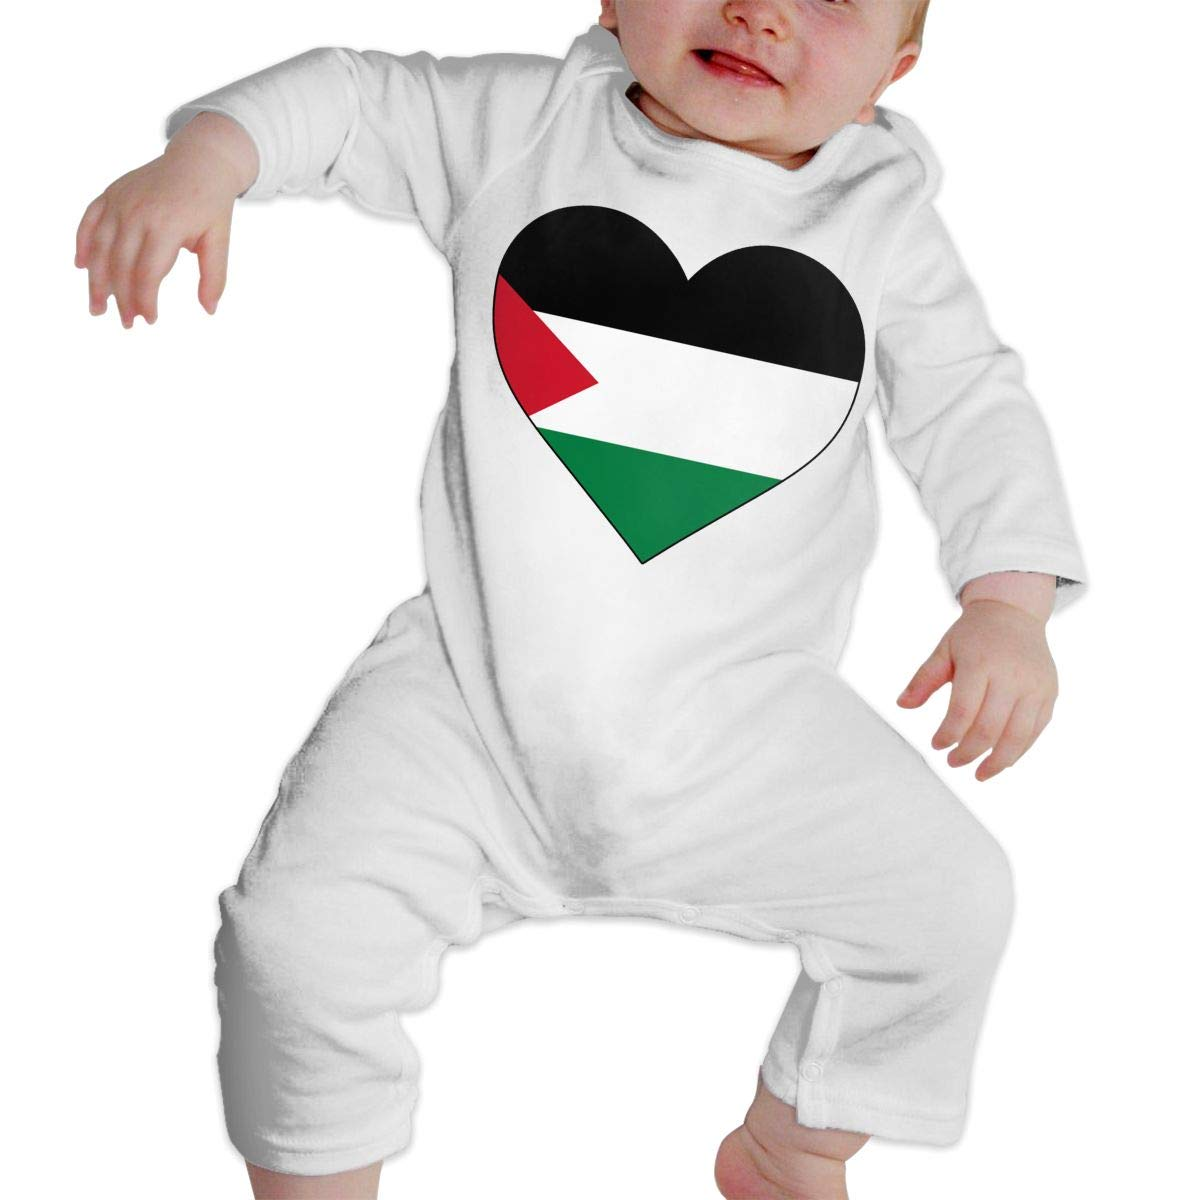 Infant Baby Boys Girls Cotton Long Sleeve Palestinian Territories Heart Love Jumpsuit Romper One-Piece Romper Clothes